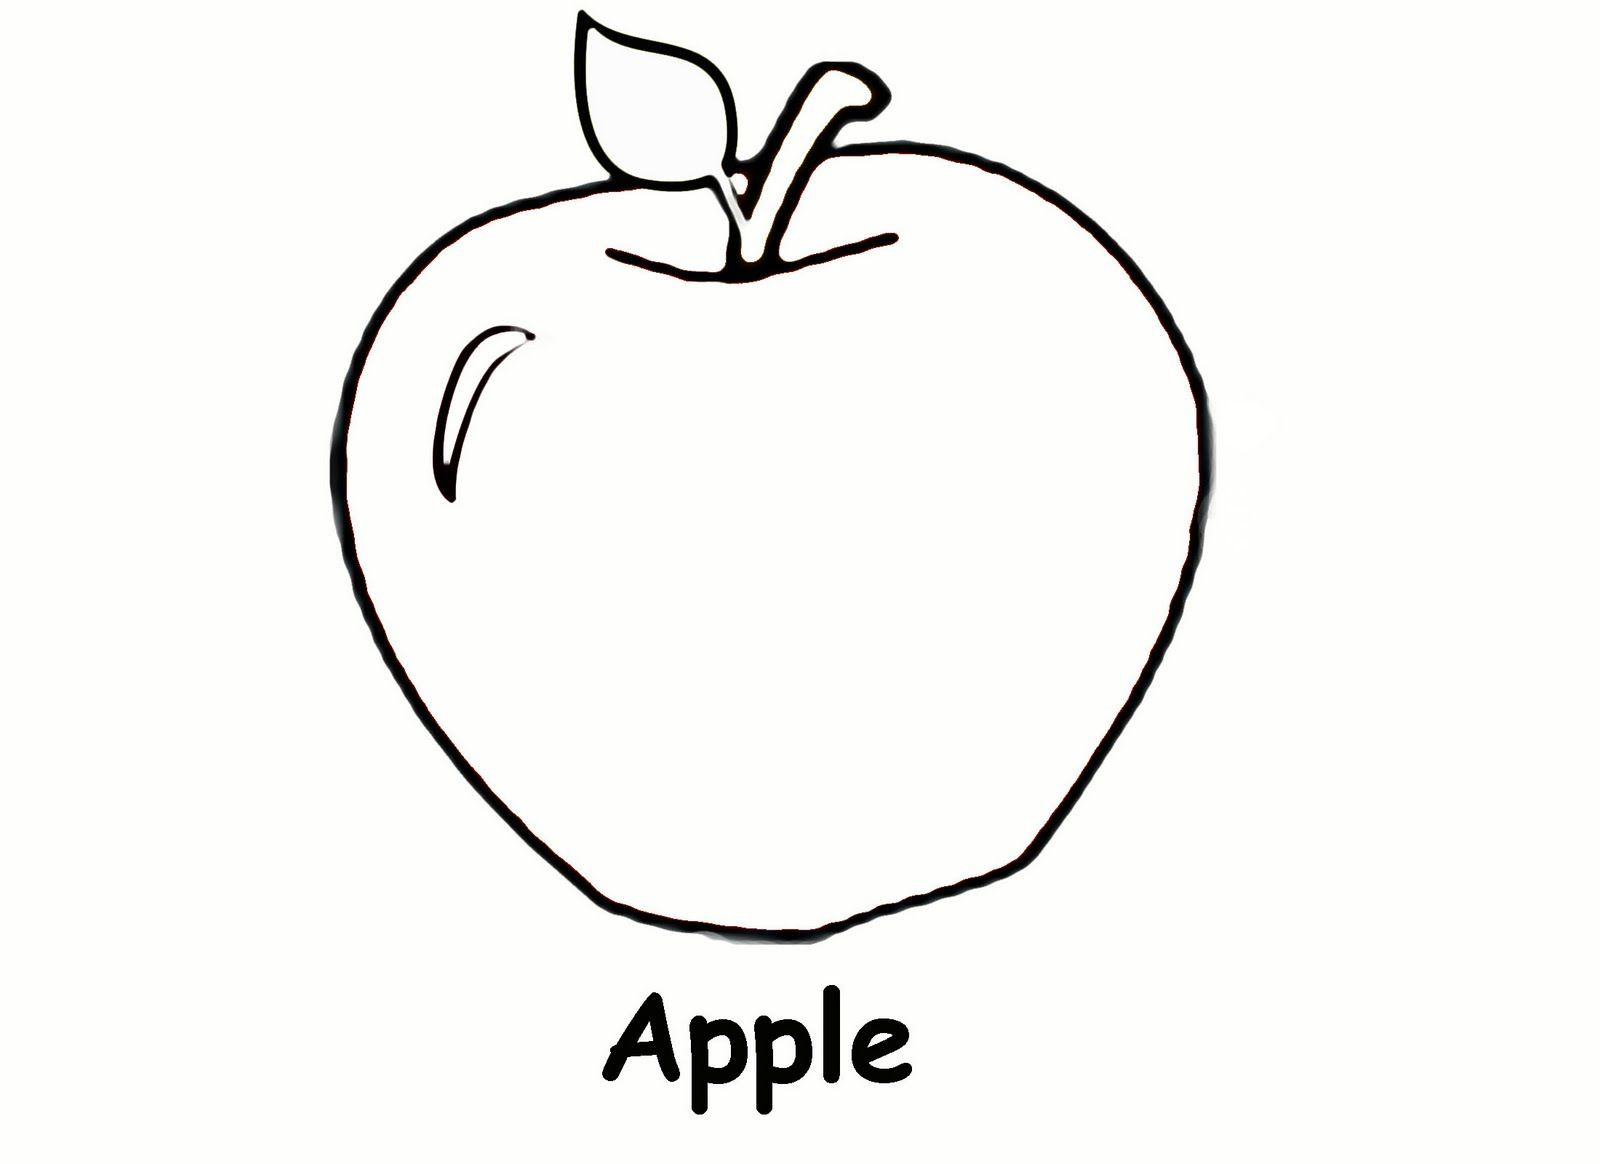 Free Printable Apple Worksheets Free Printable Apple Coloring Pages for Kids